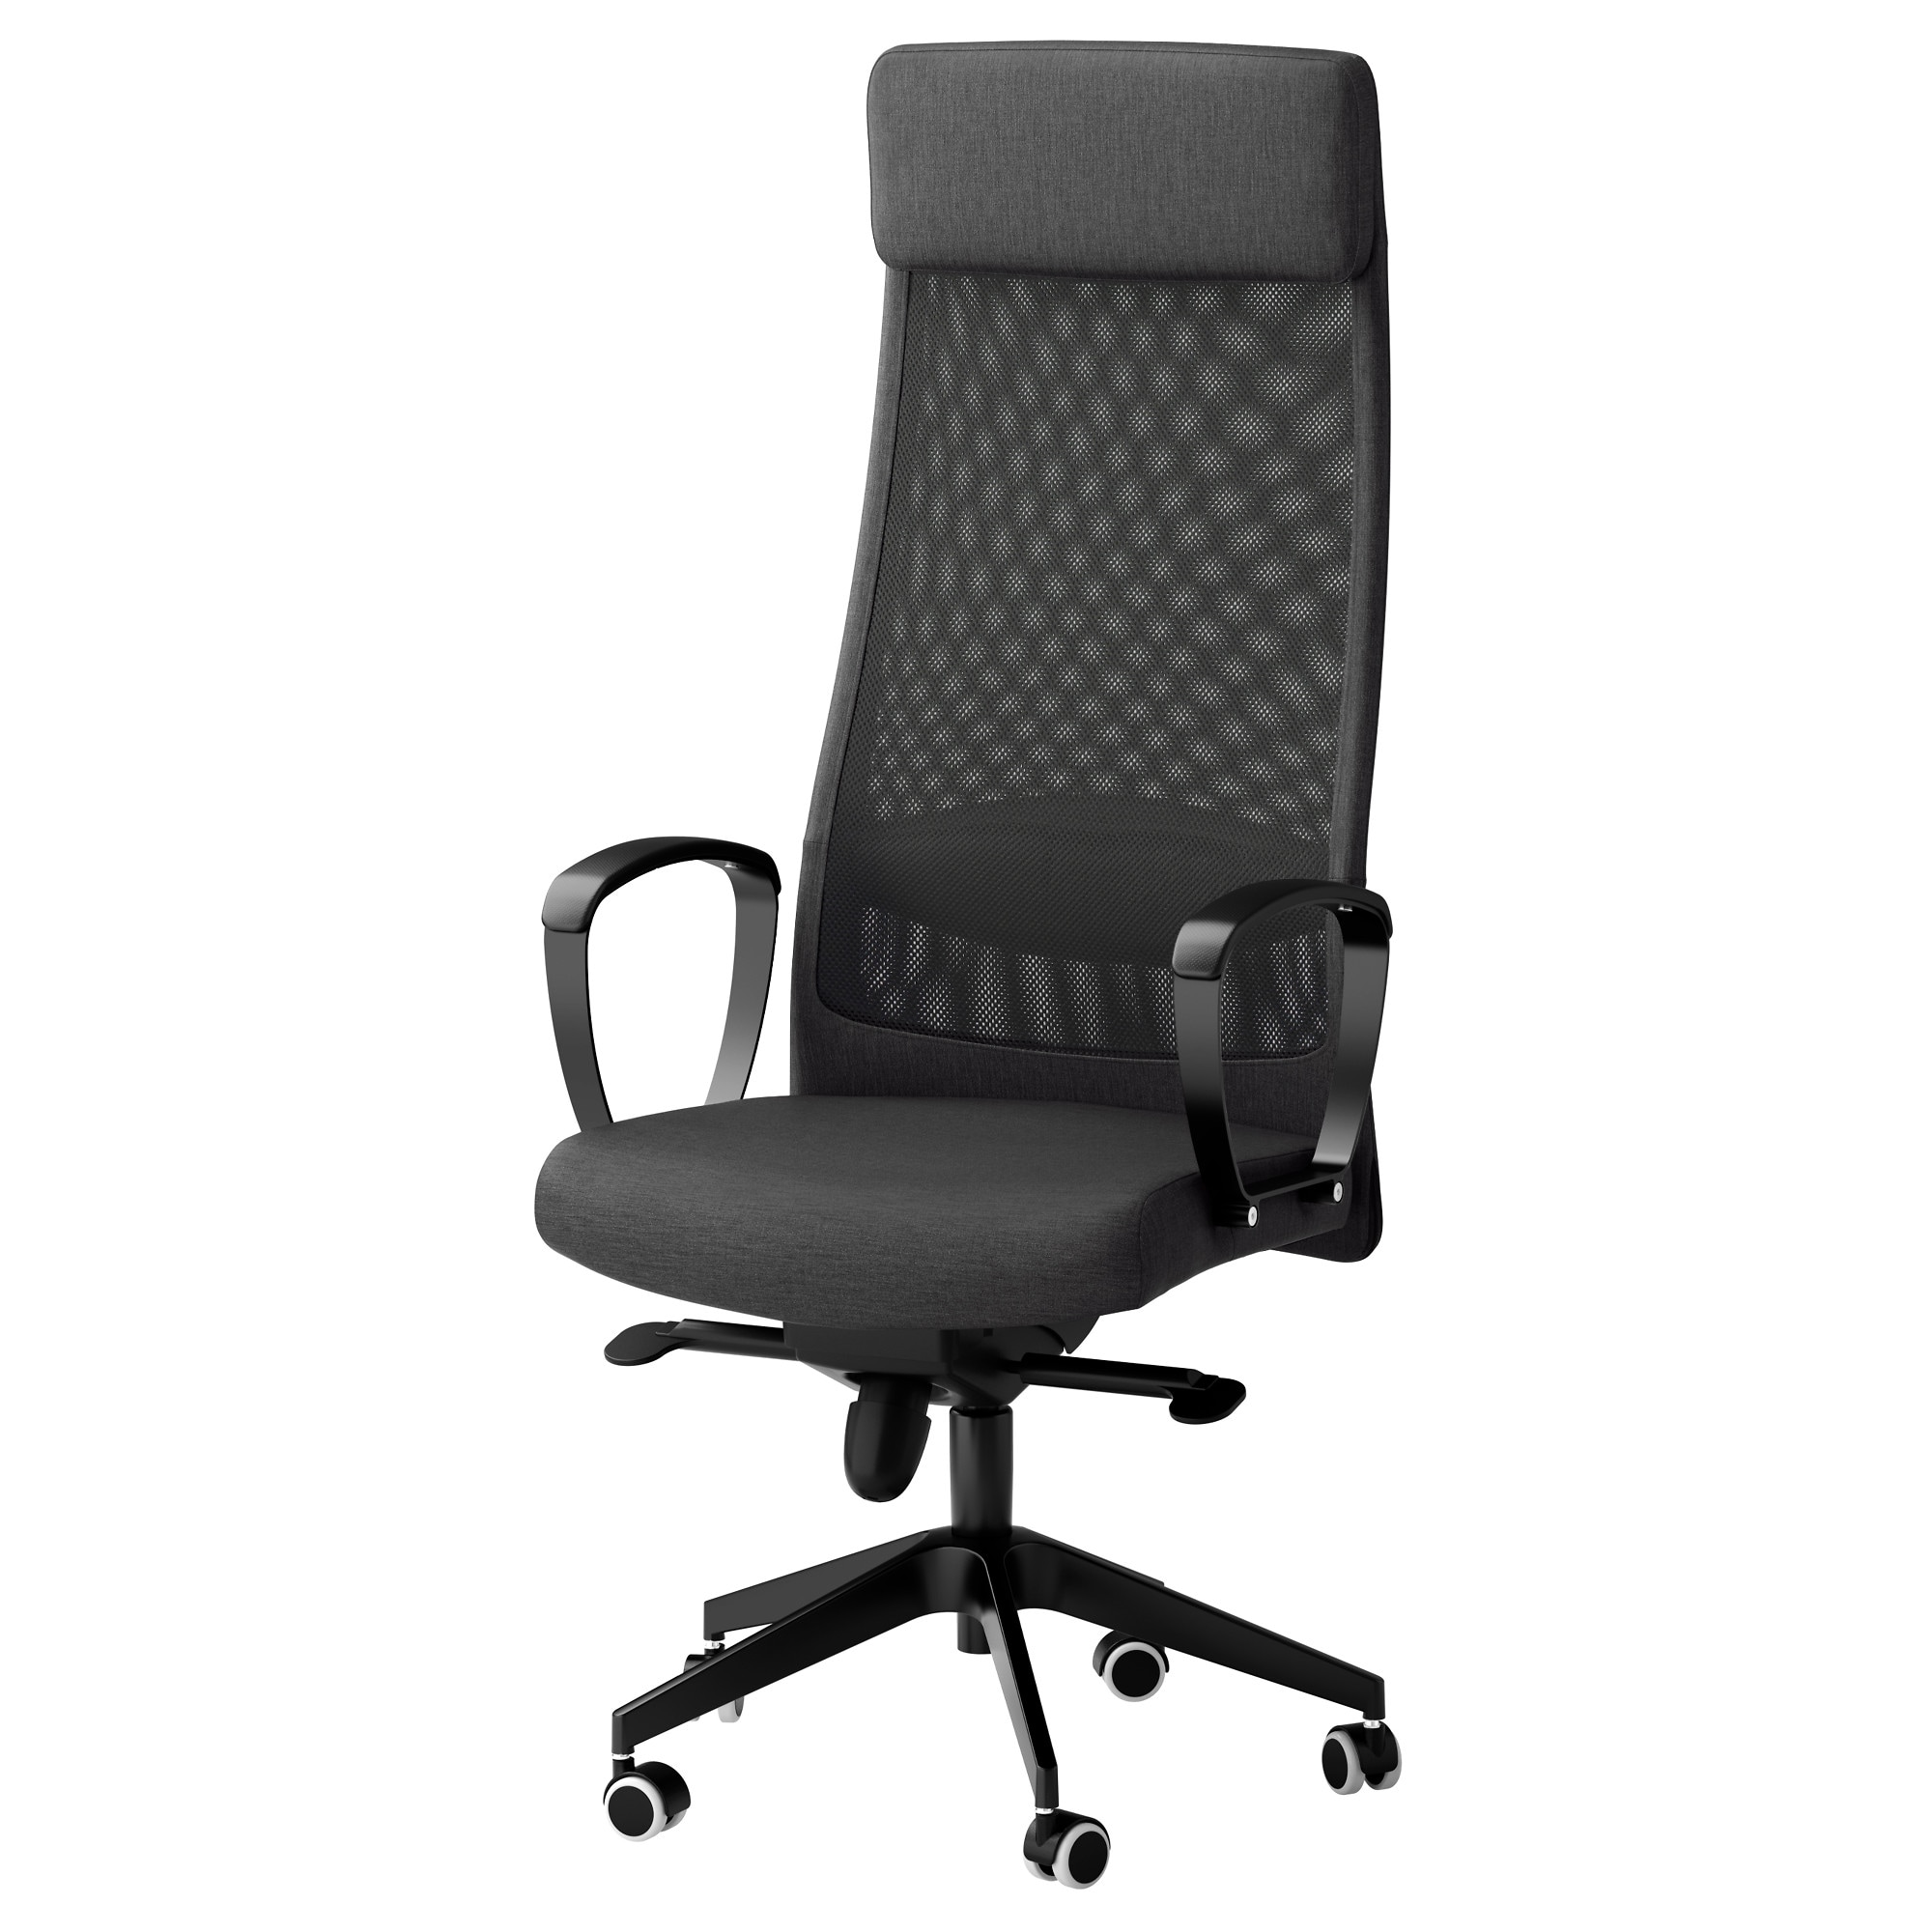 MARKUS Swivel Chair Glose Black IKEA - Office computer chairs